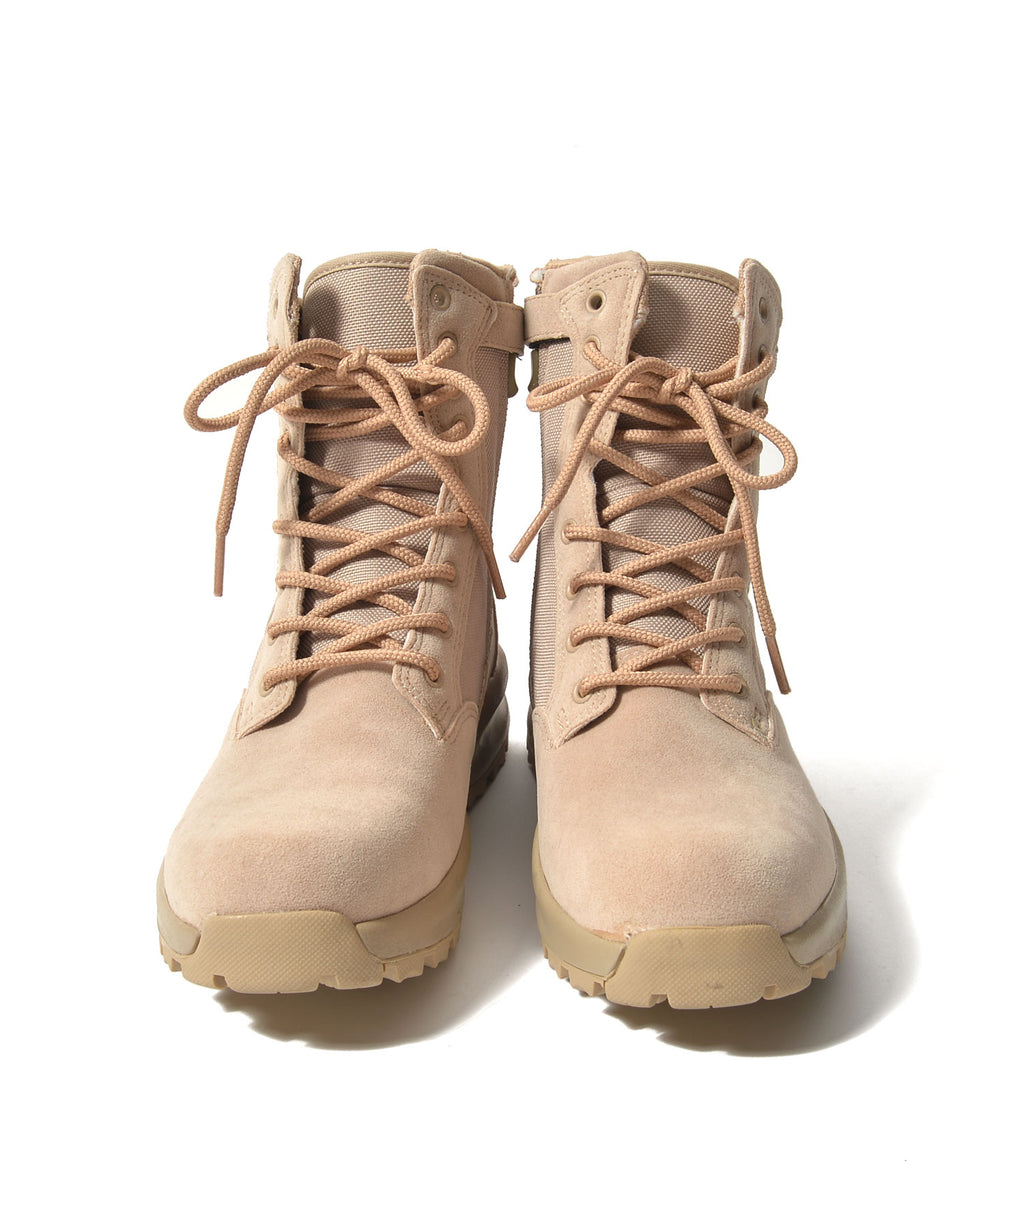 High cut lace up boots